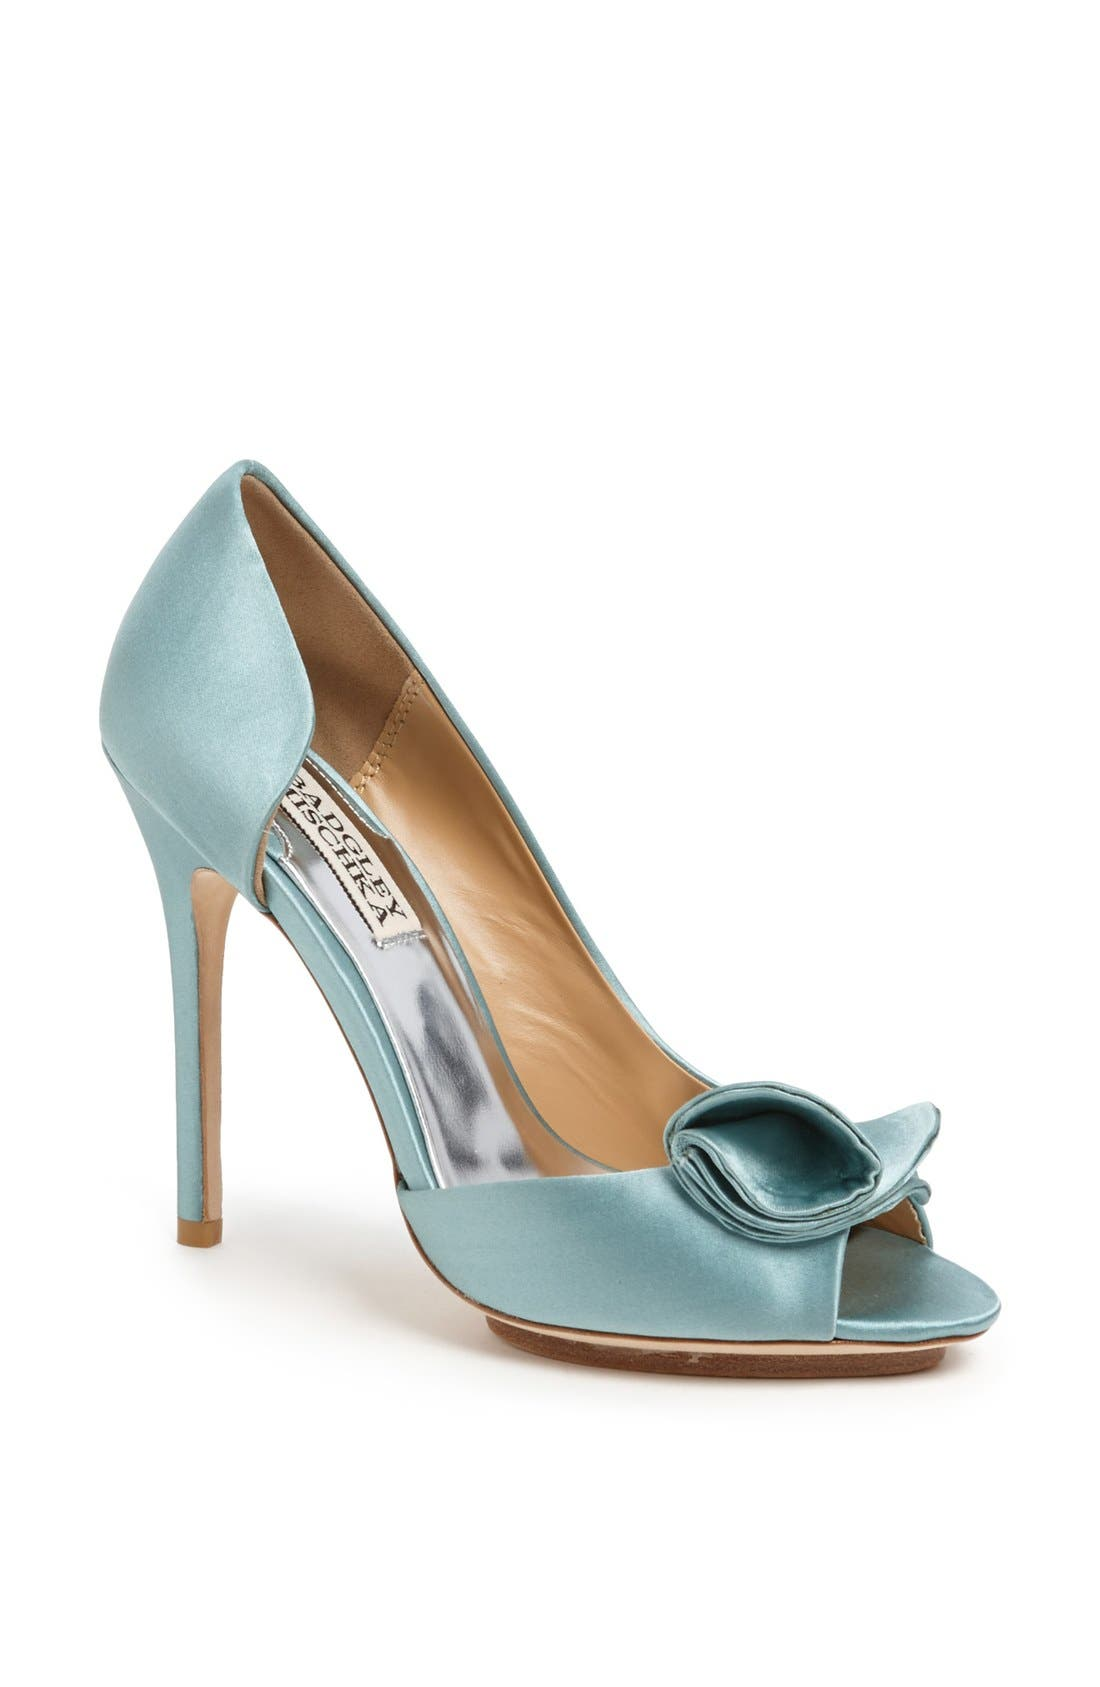 Main Image - Badgley Mischka 'Tarian' Pump